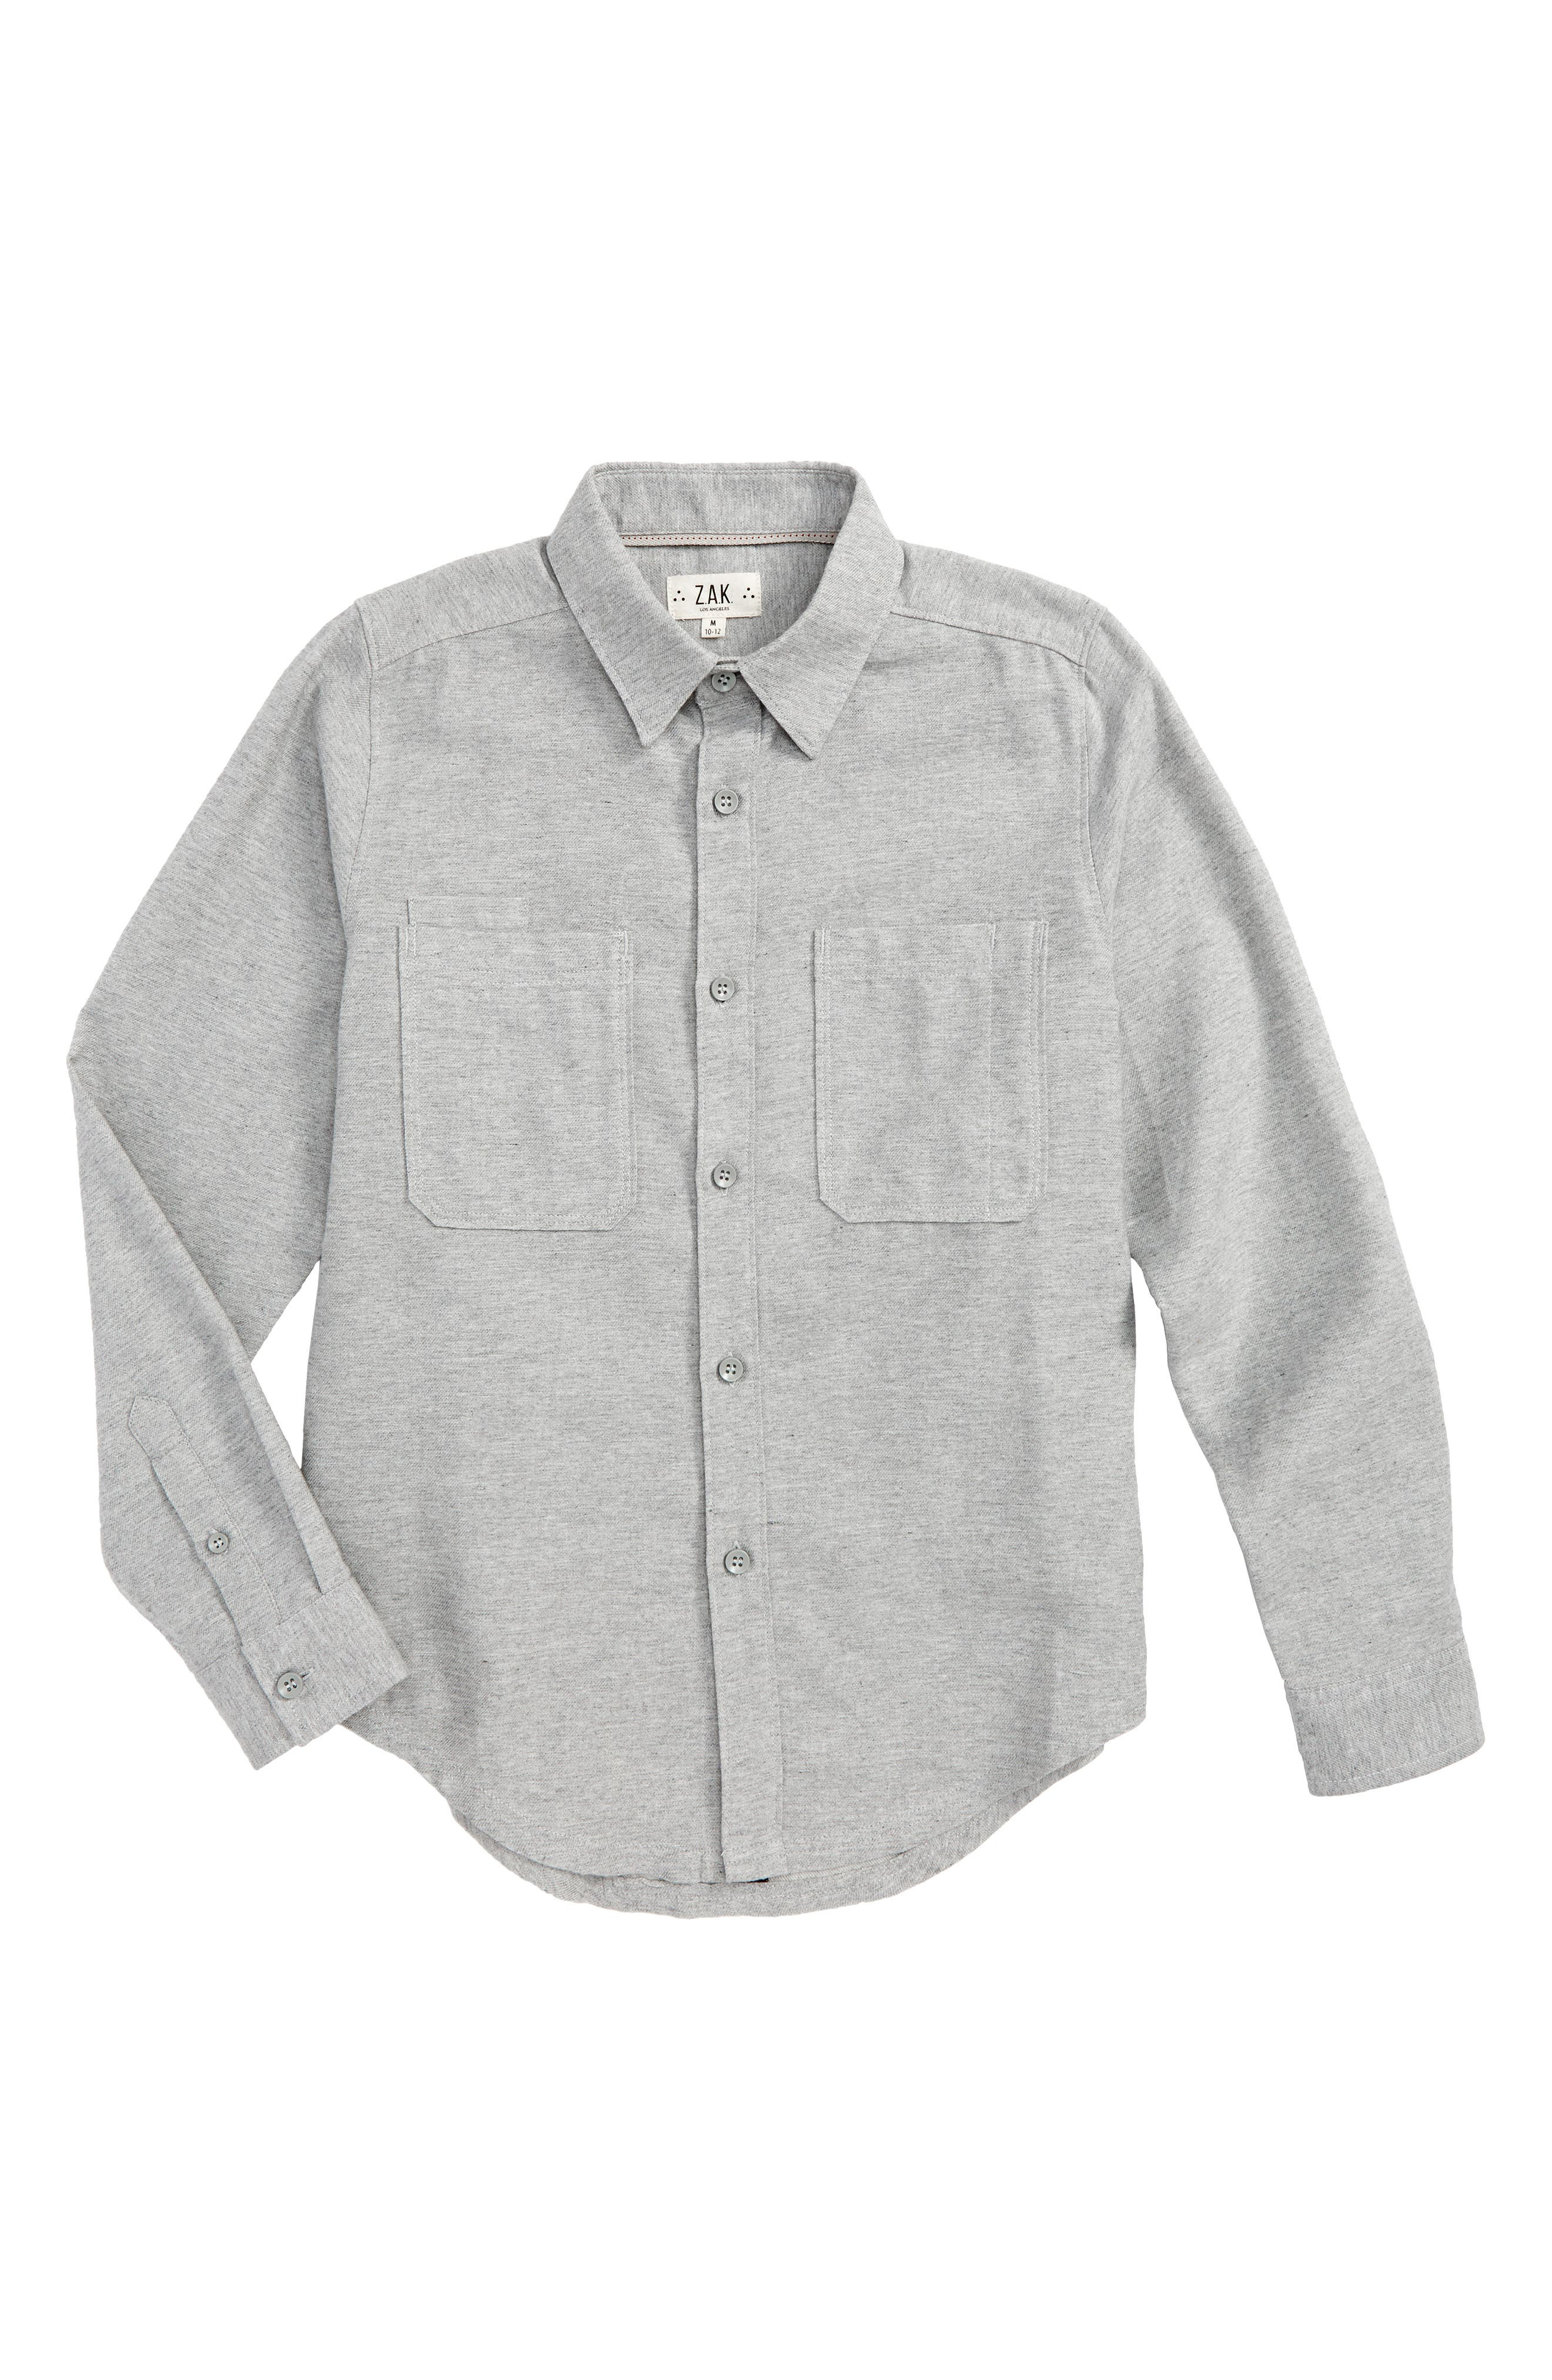 Woven Flannel Shirt,                         Main,                         color, 021